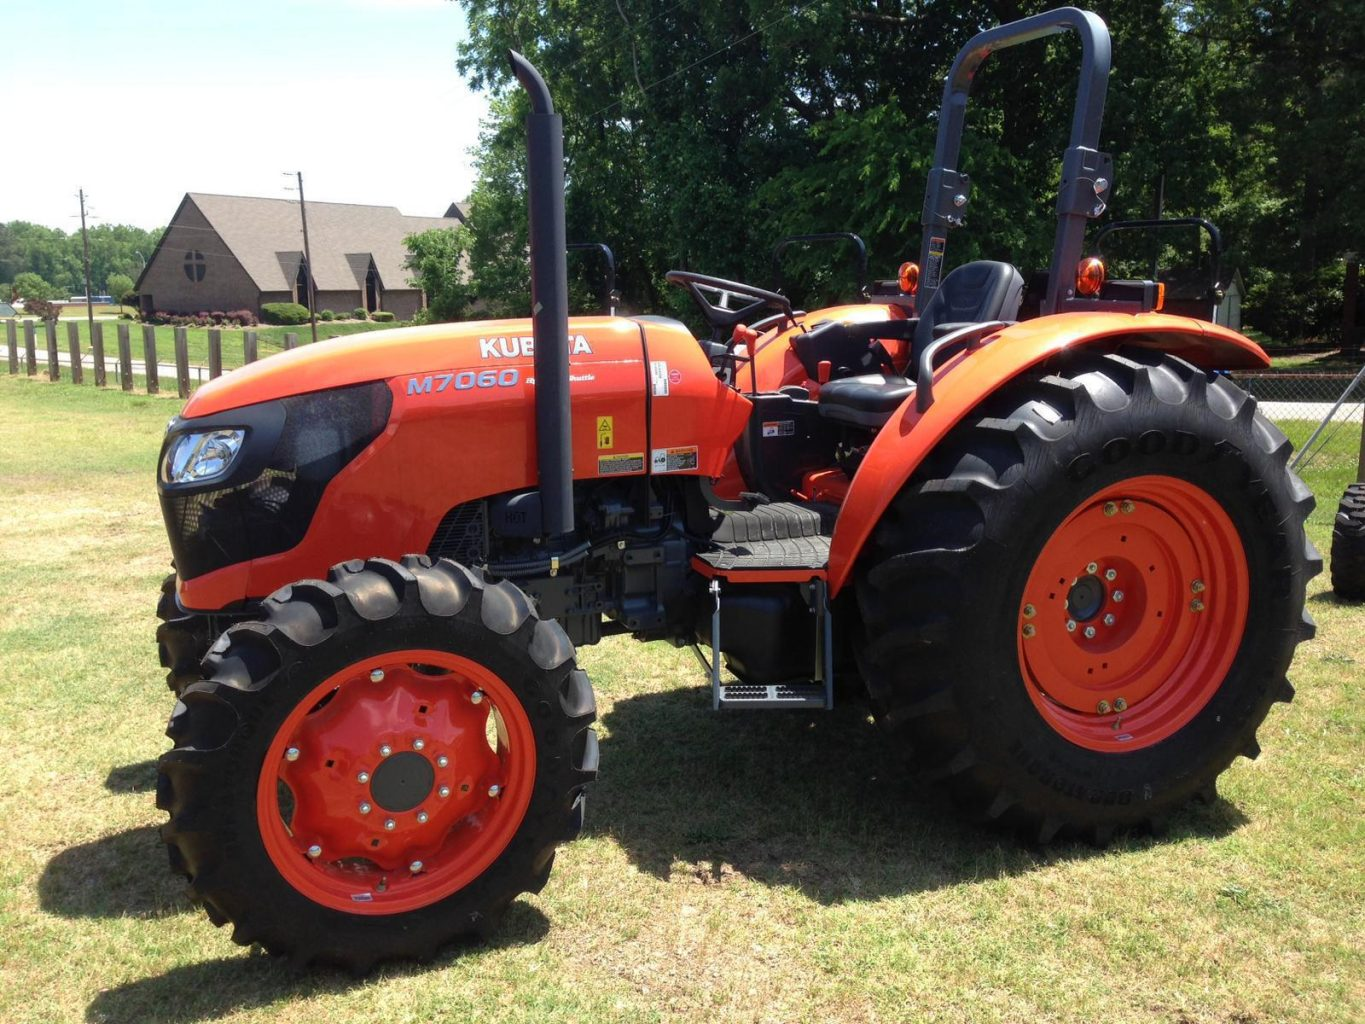 Kubota M7060 Review, Price, Specs, Cab features and Images